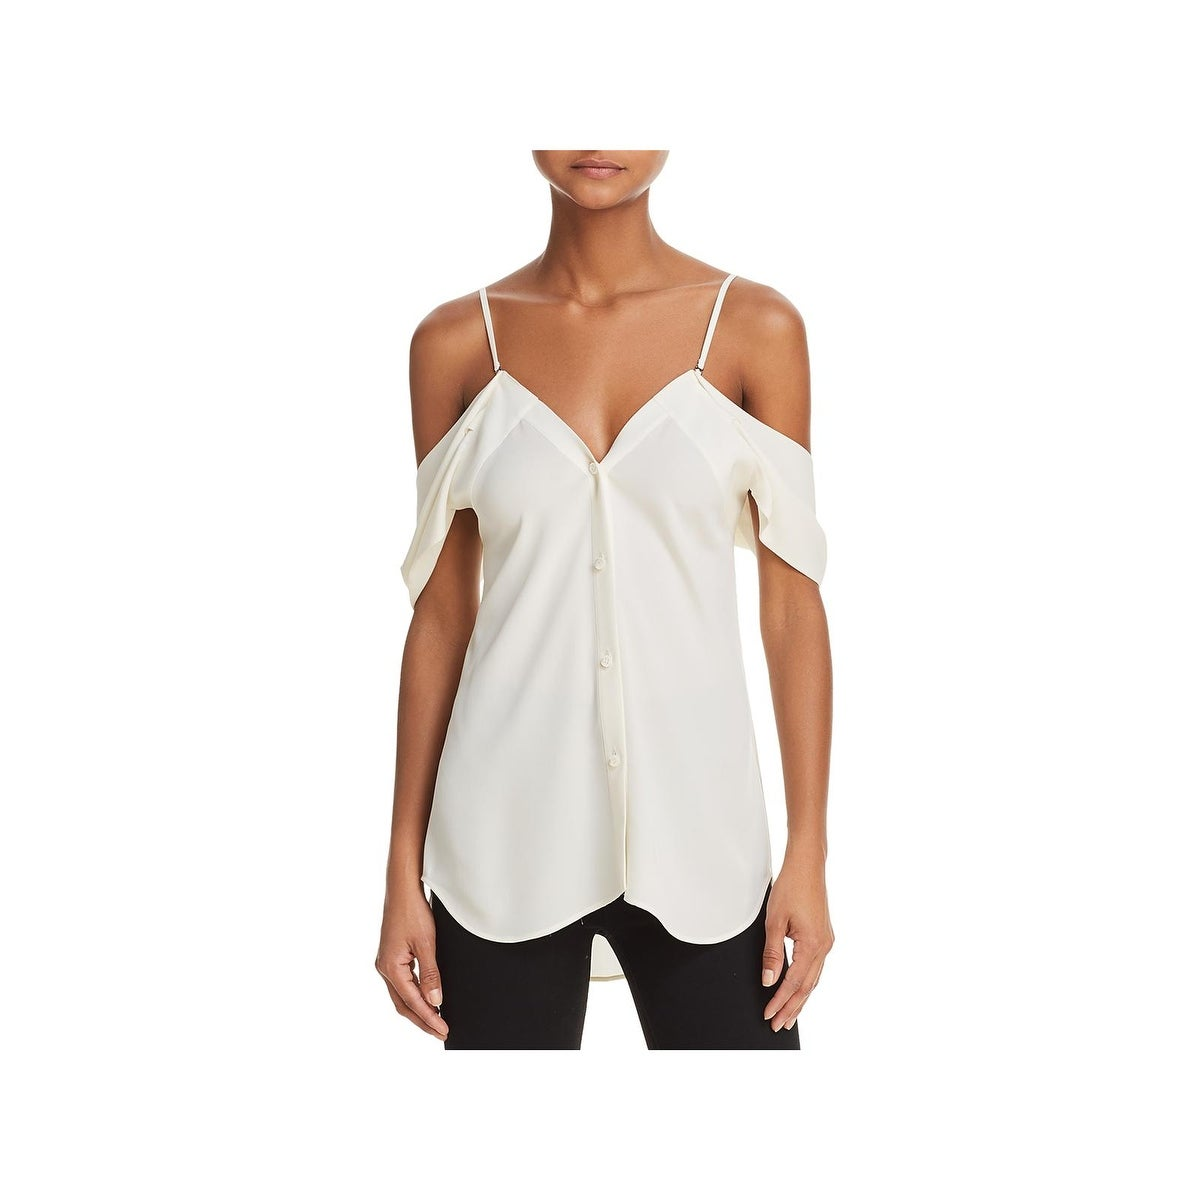 8839a48d7ab Theory Tops   Find Great Women's Clothing Deals Shopping at Overstock